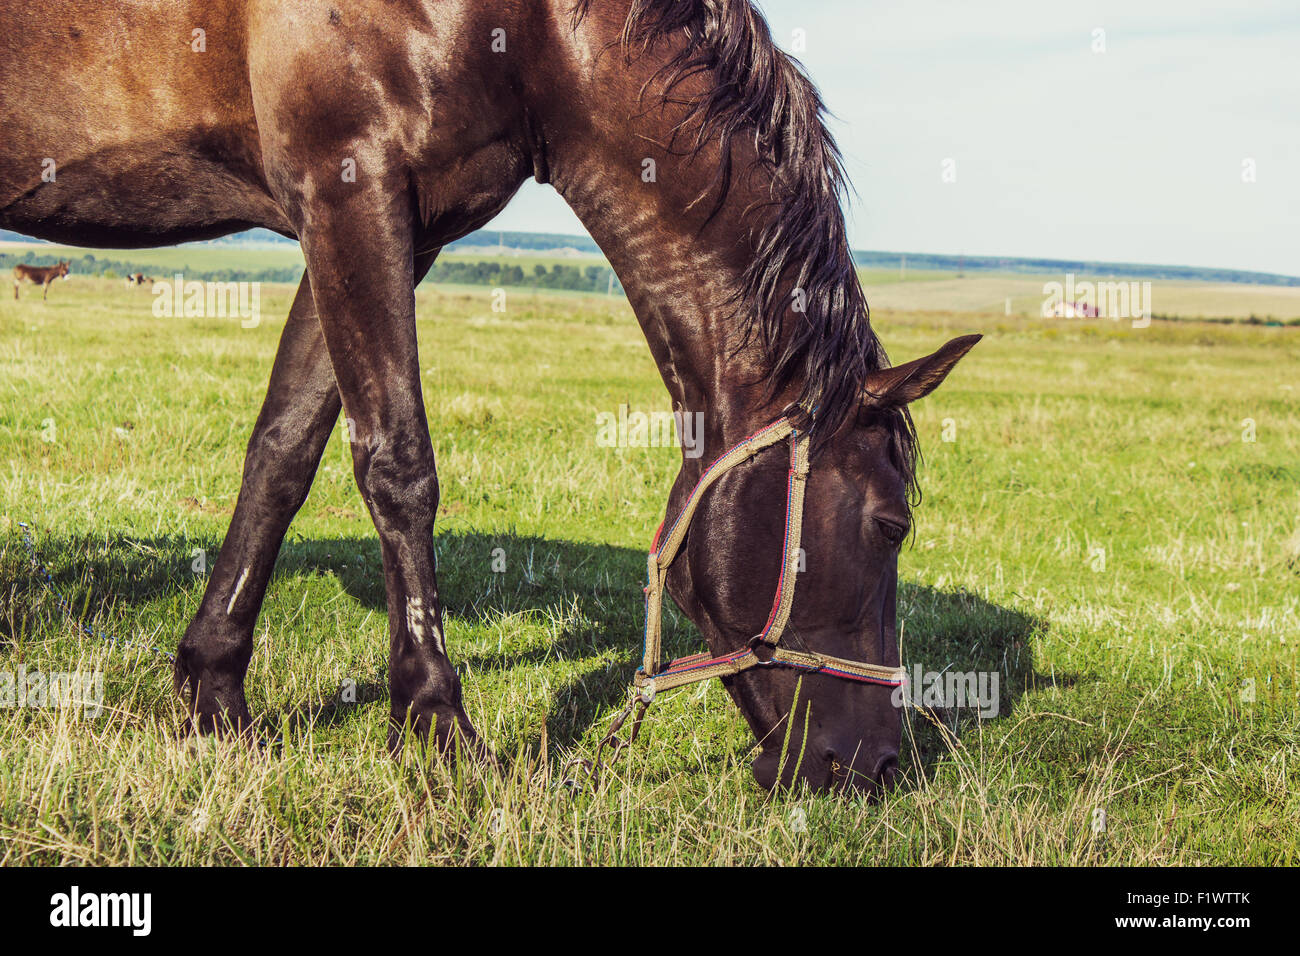 bay horse in the field on the sky background. - Stock Image